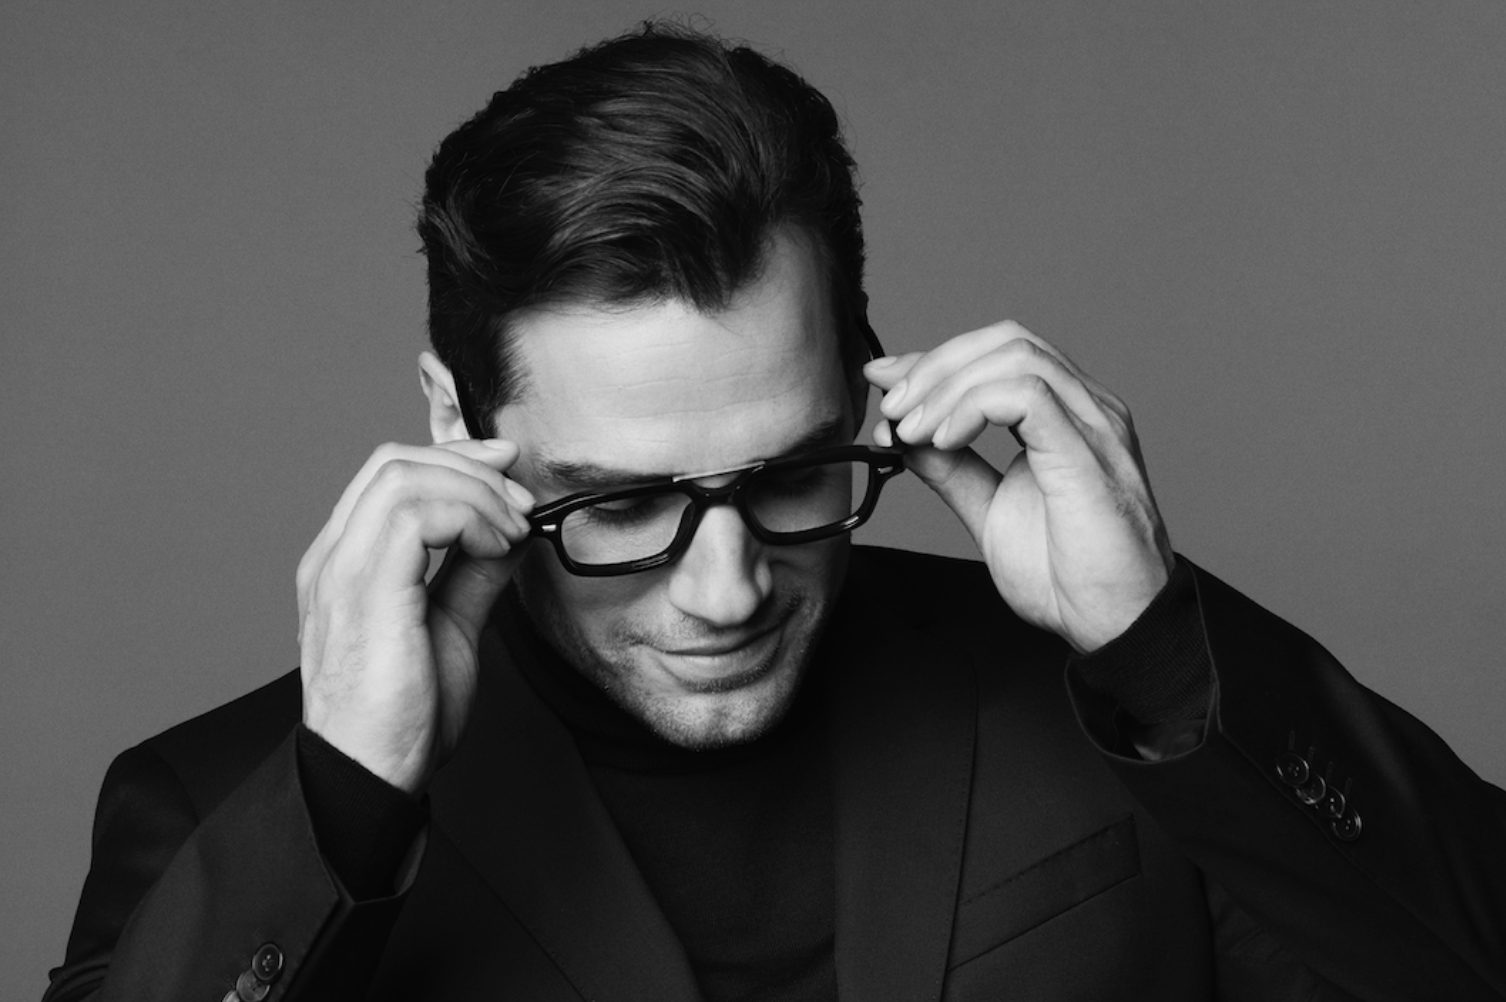 #SharpenYourFocus BOSS Eyewear Pt. 2 with Henry Cavill